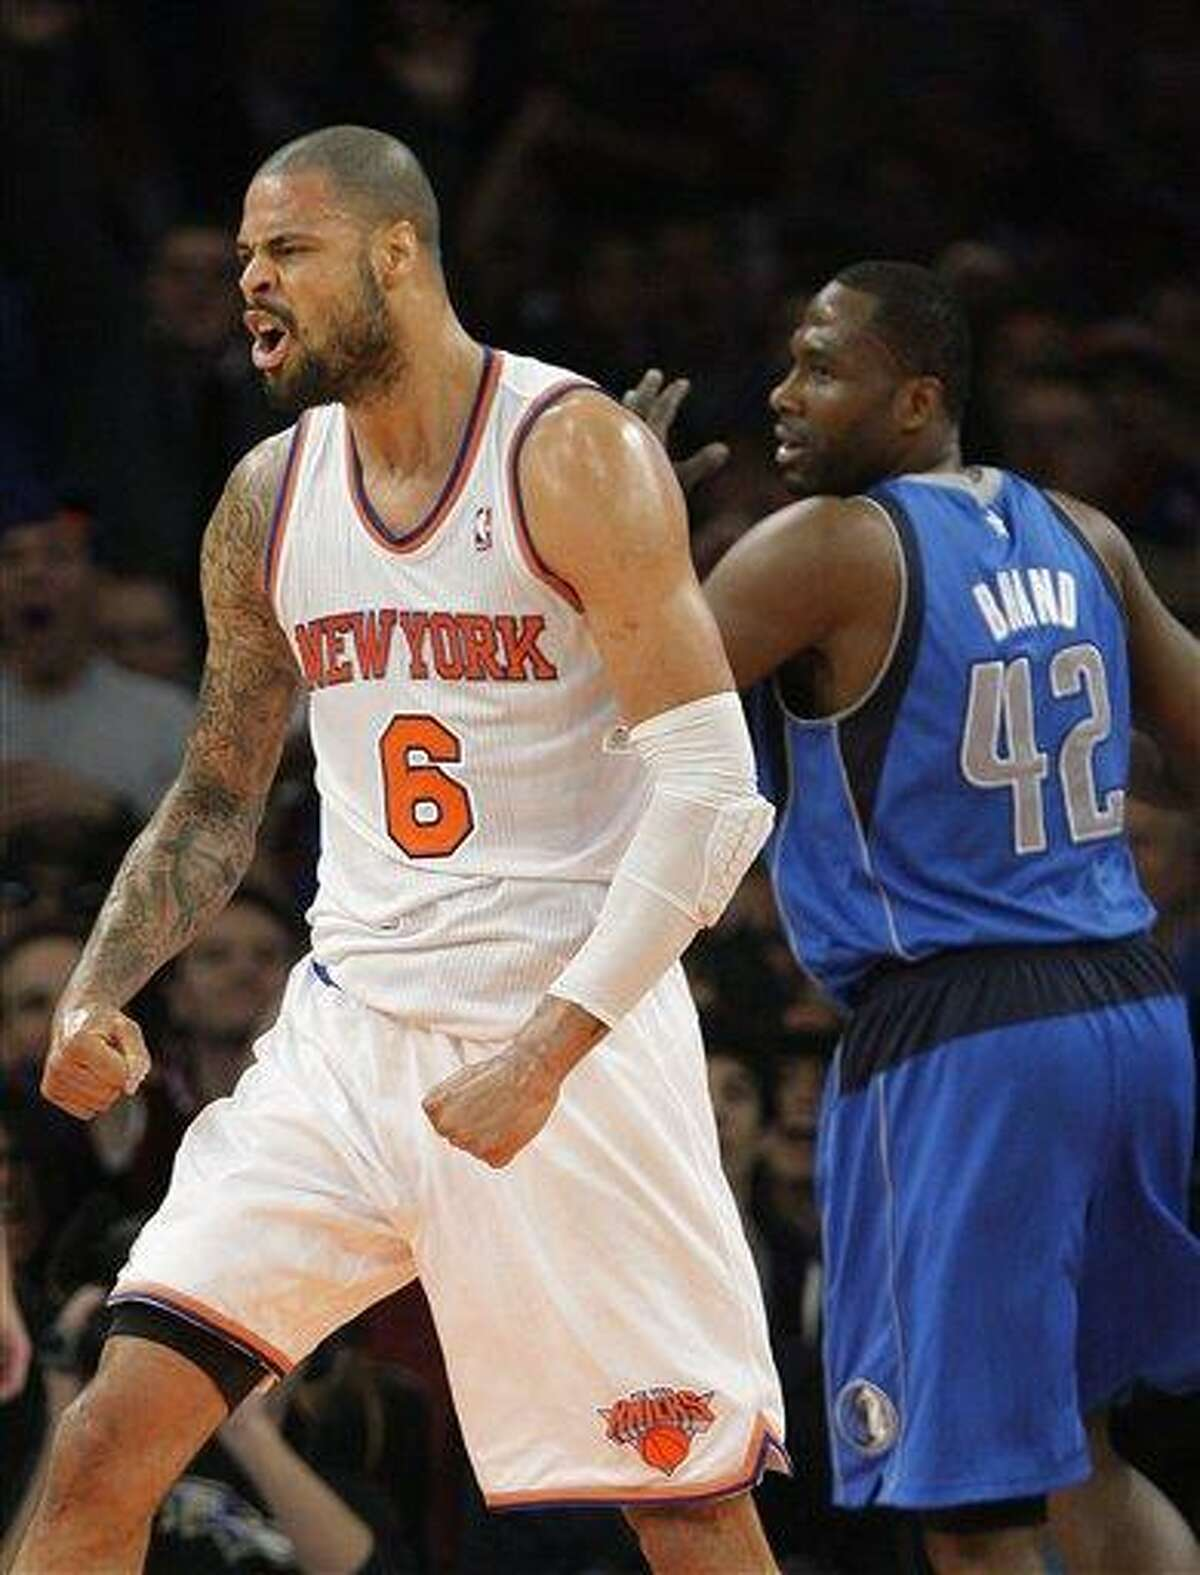 New York Knicks' Tyson Chandler (6) and Dallas Mavericks' Elton Brand (42) react to a play during the second half of an NBA basketball game Friday, Nov. 9, 2012, in New York. The Knicks won 104-94. (AP Photo/Frank Franklin II)